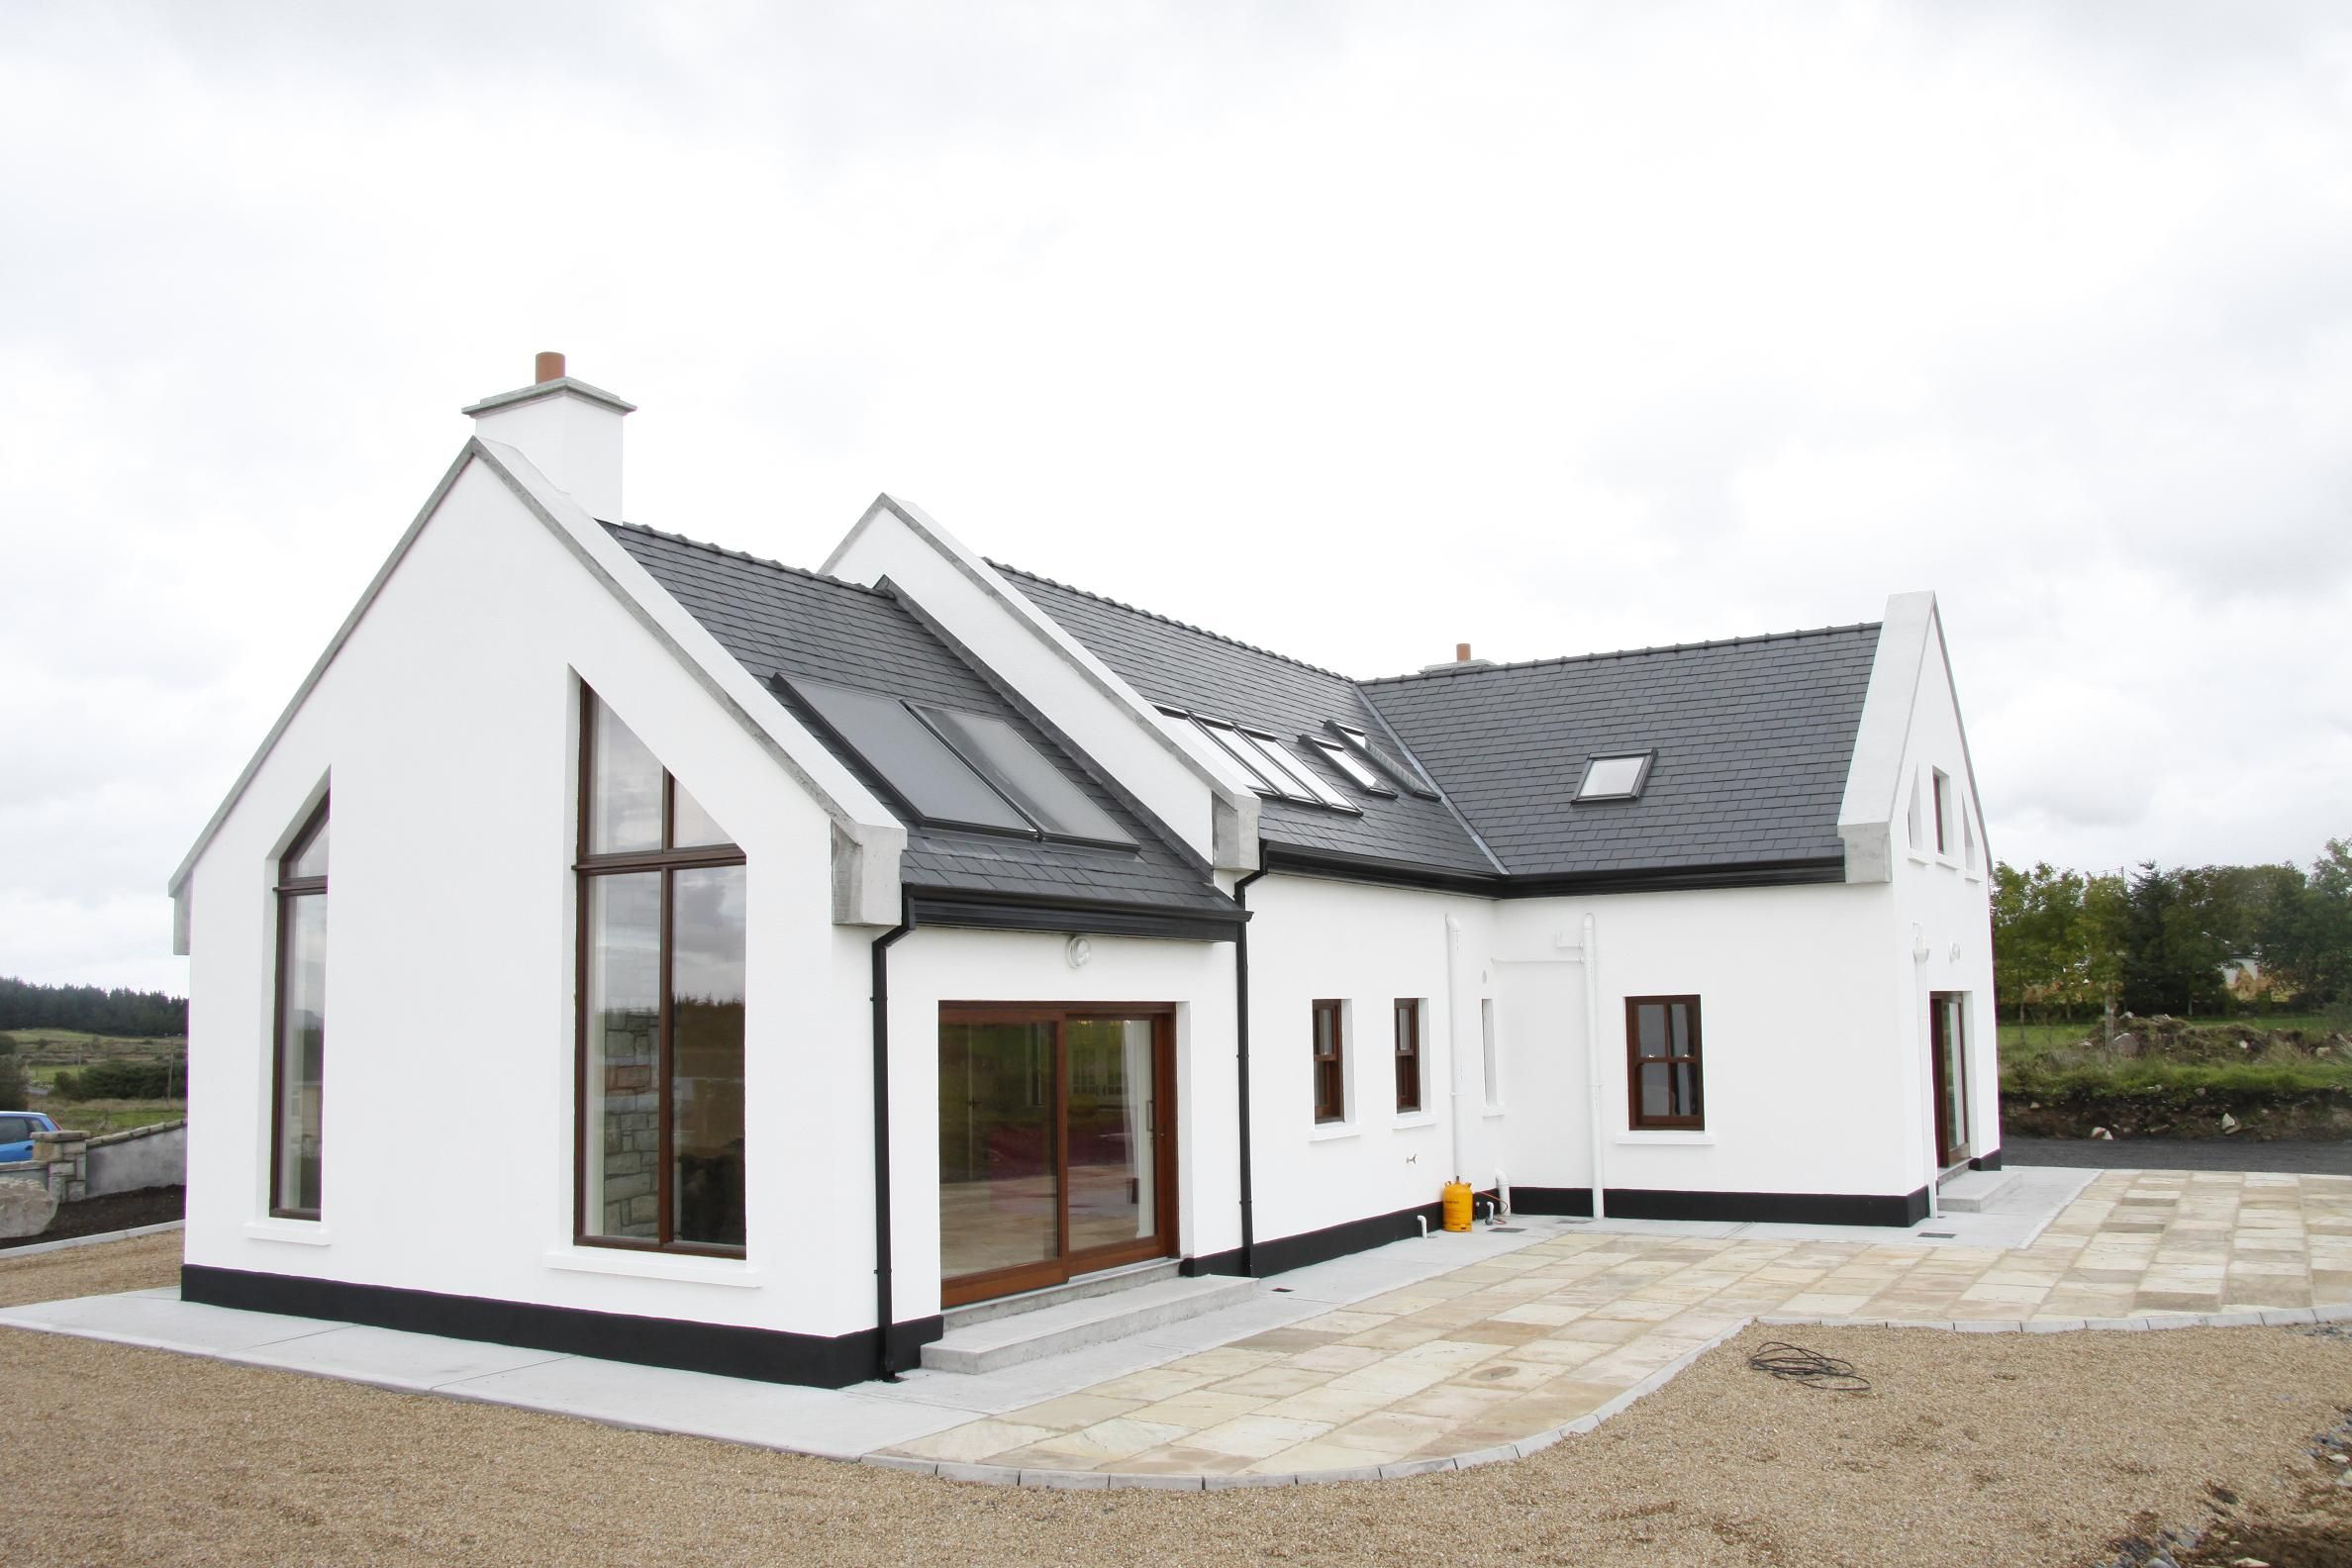 Exterior bungalow house ireland google search house for 4 bedroom house plans ireland